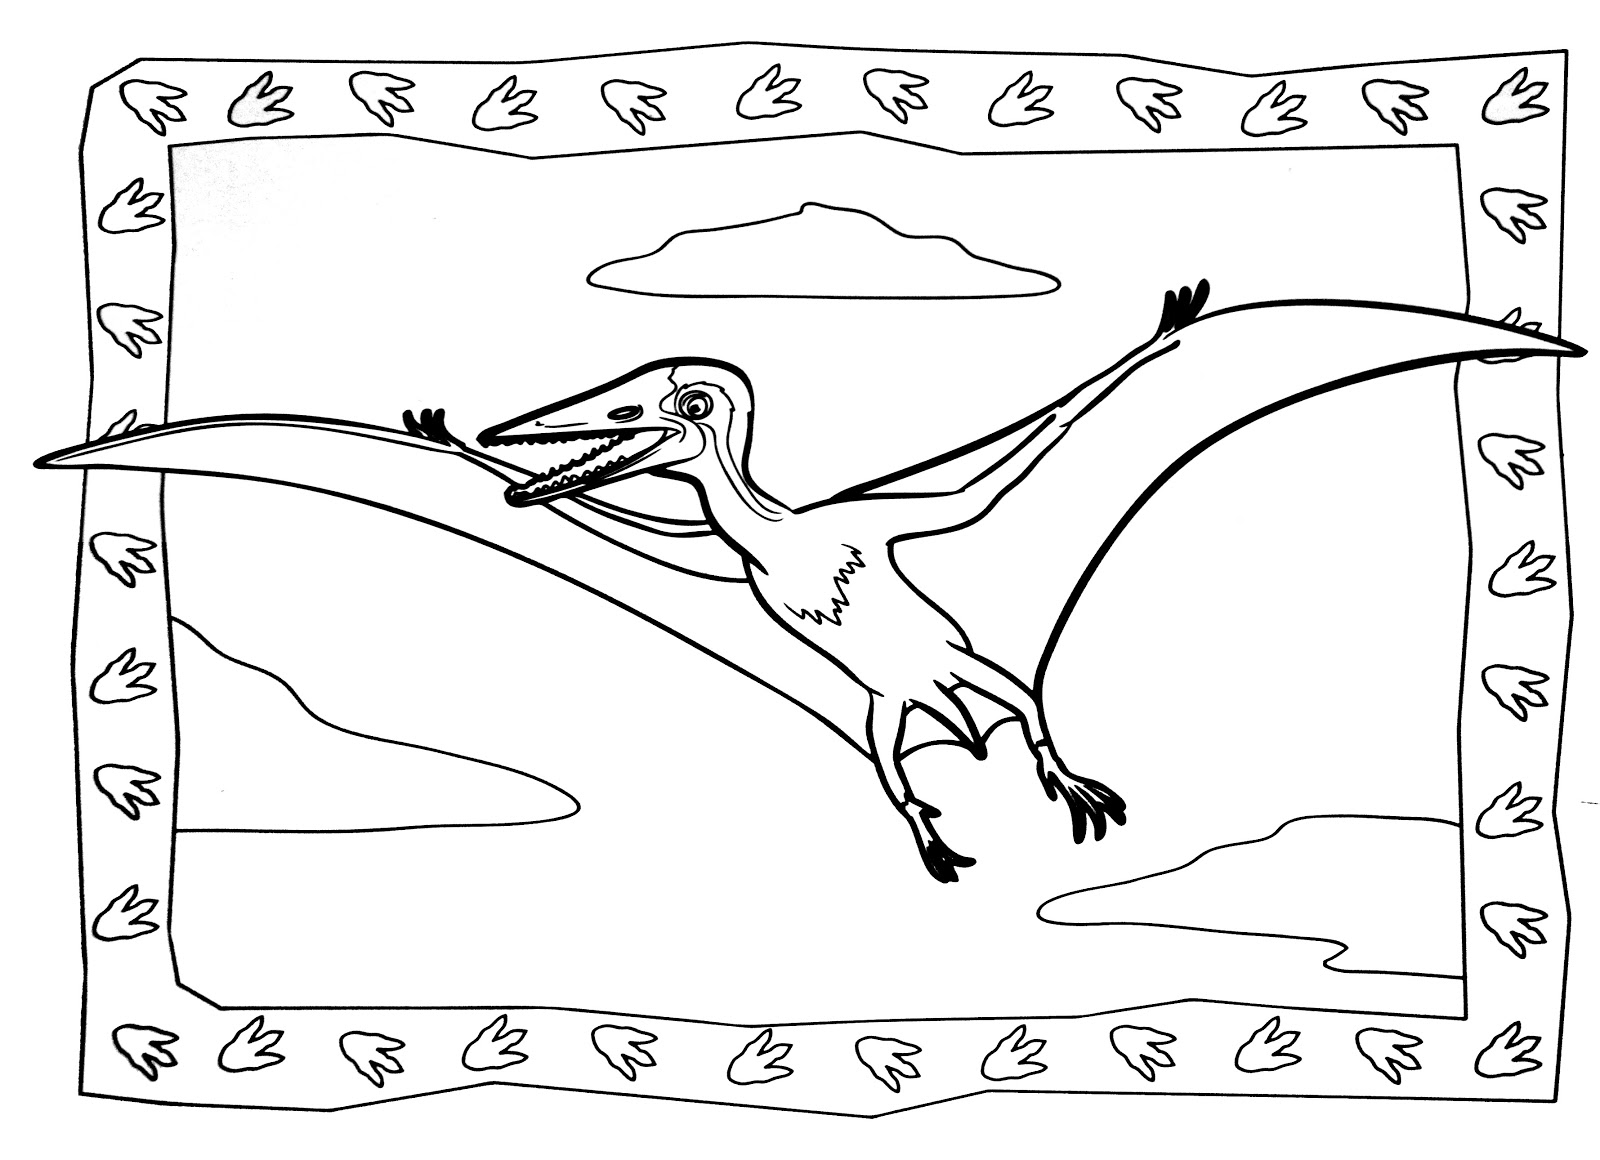 Dinosaurs coloring pages 41